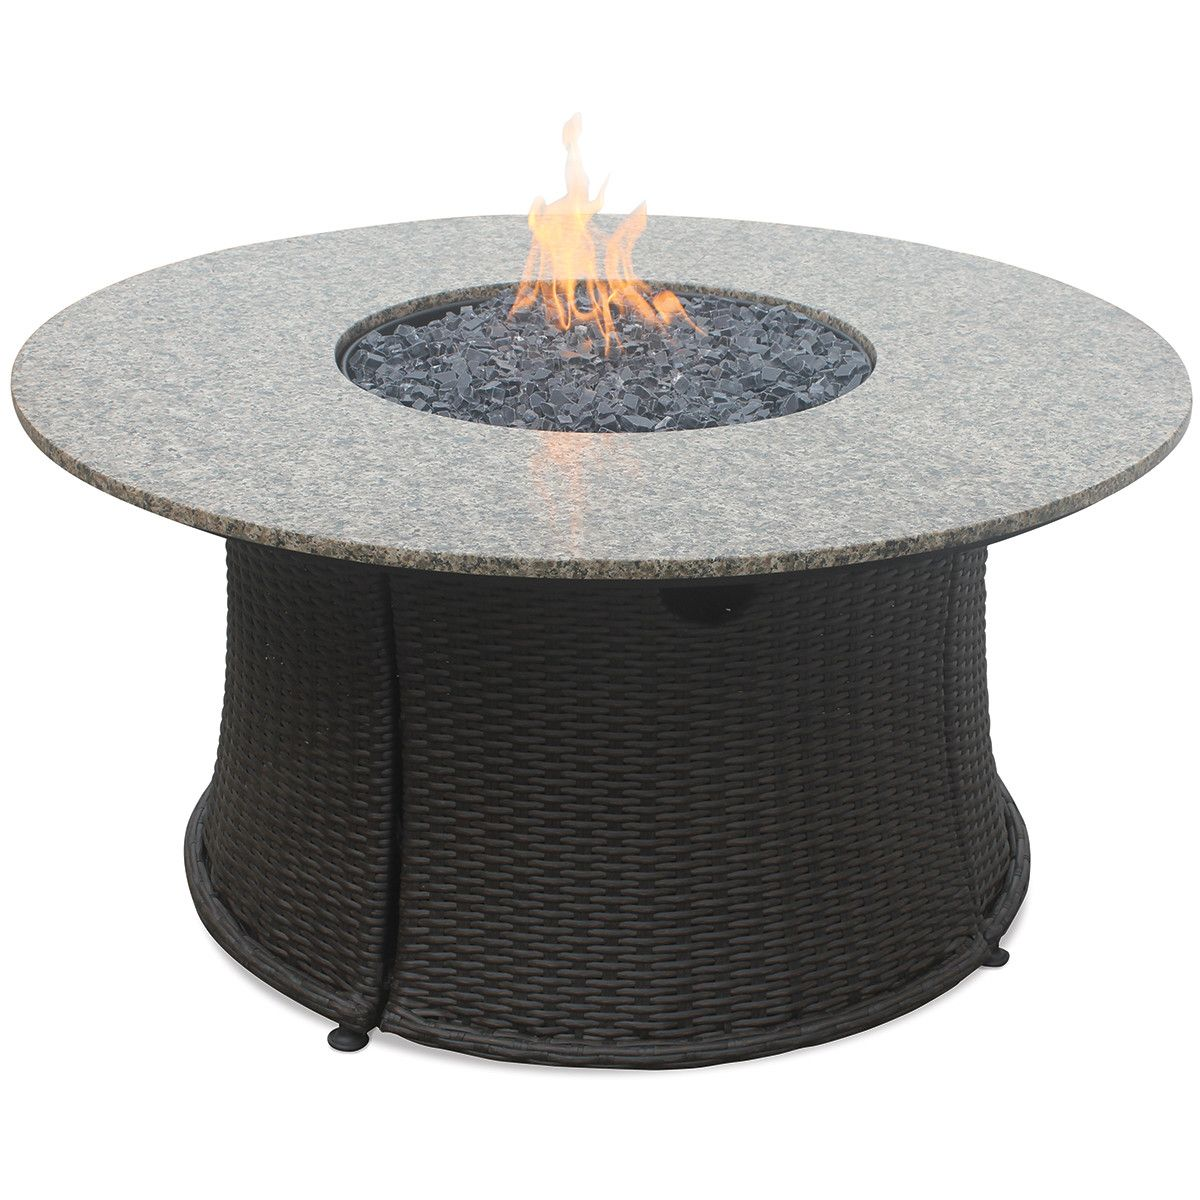 Stainless Steel Propane Fire Pit Table Gas Fire Pit Table Propane Fire Pit Table Outdoor Fire Table